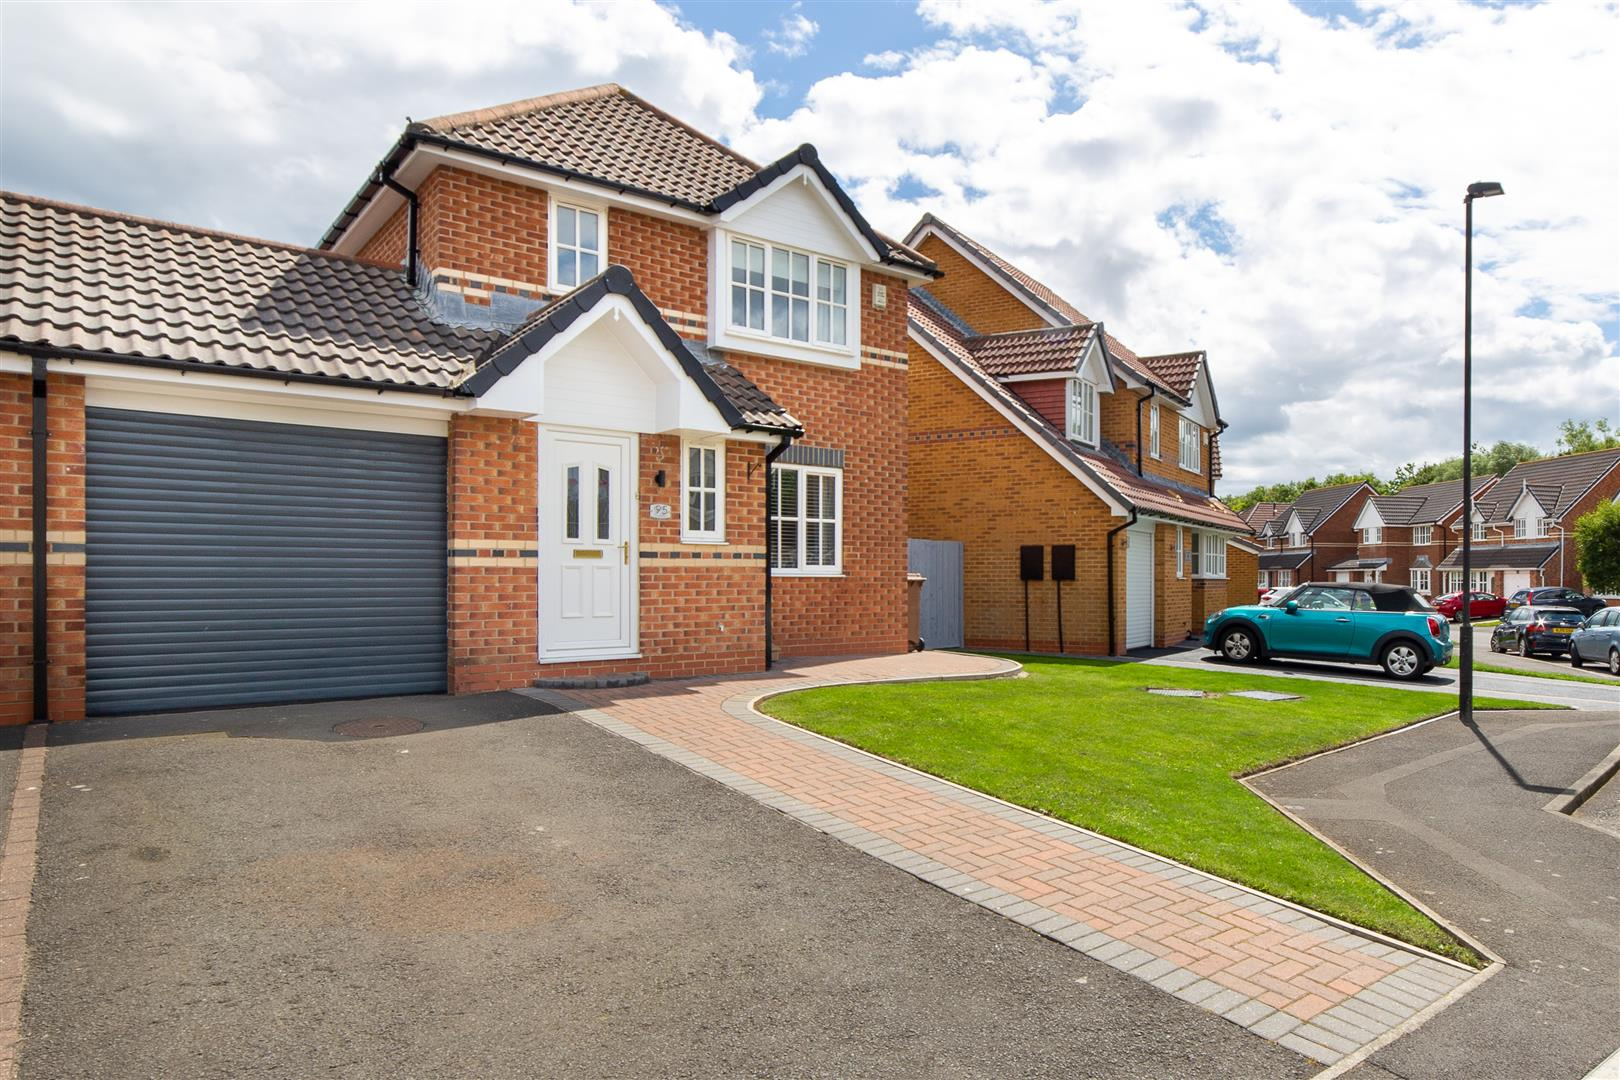 3 bed detached house for sale in Newcastle Upon Tyne, NE27 0RF, NE27